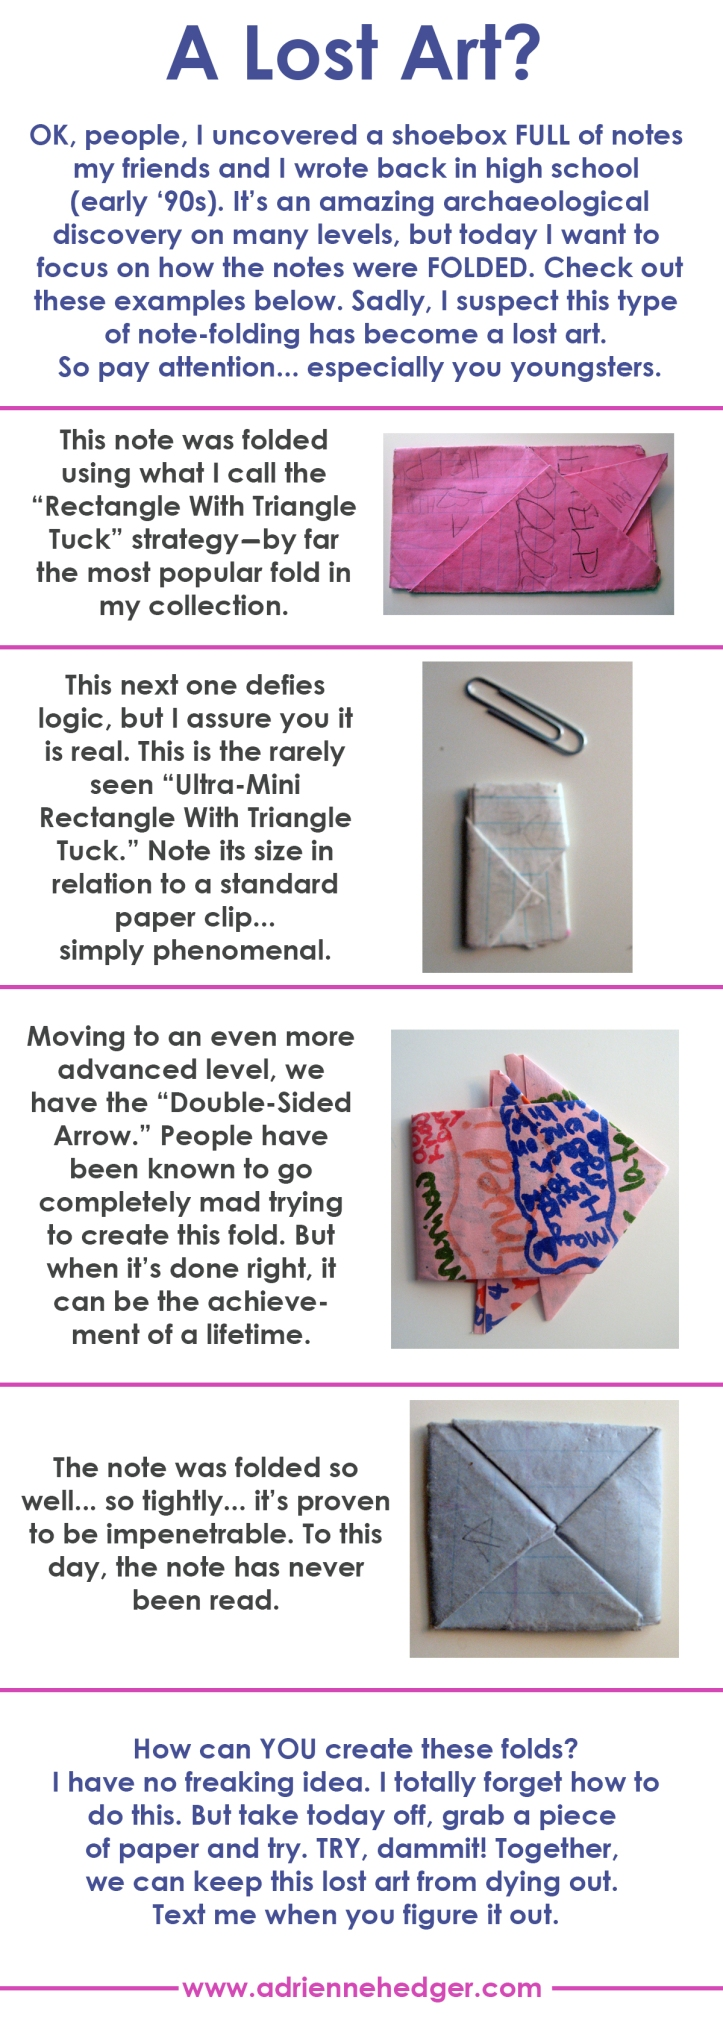 The Lost Art of Folding Notes